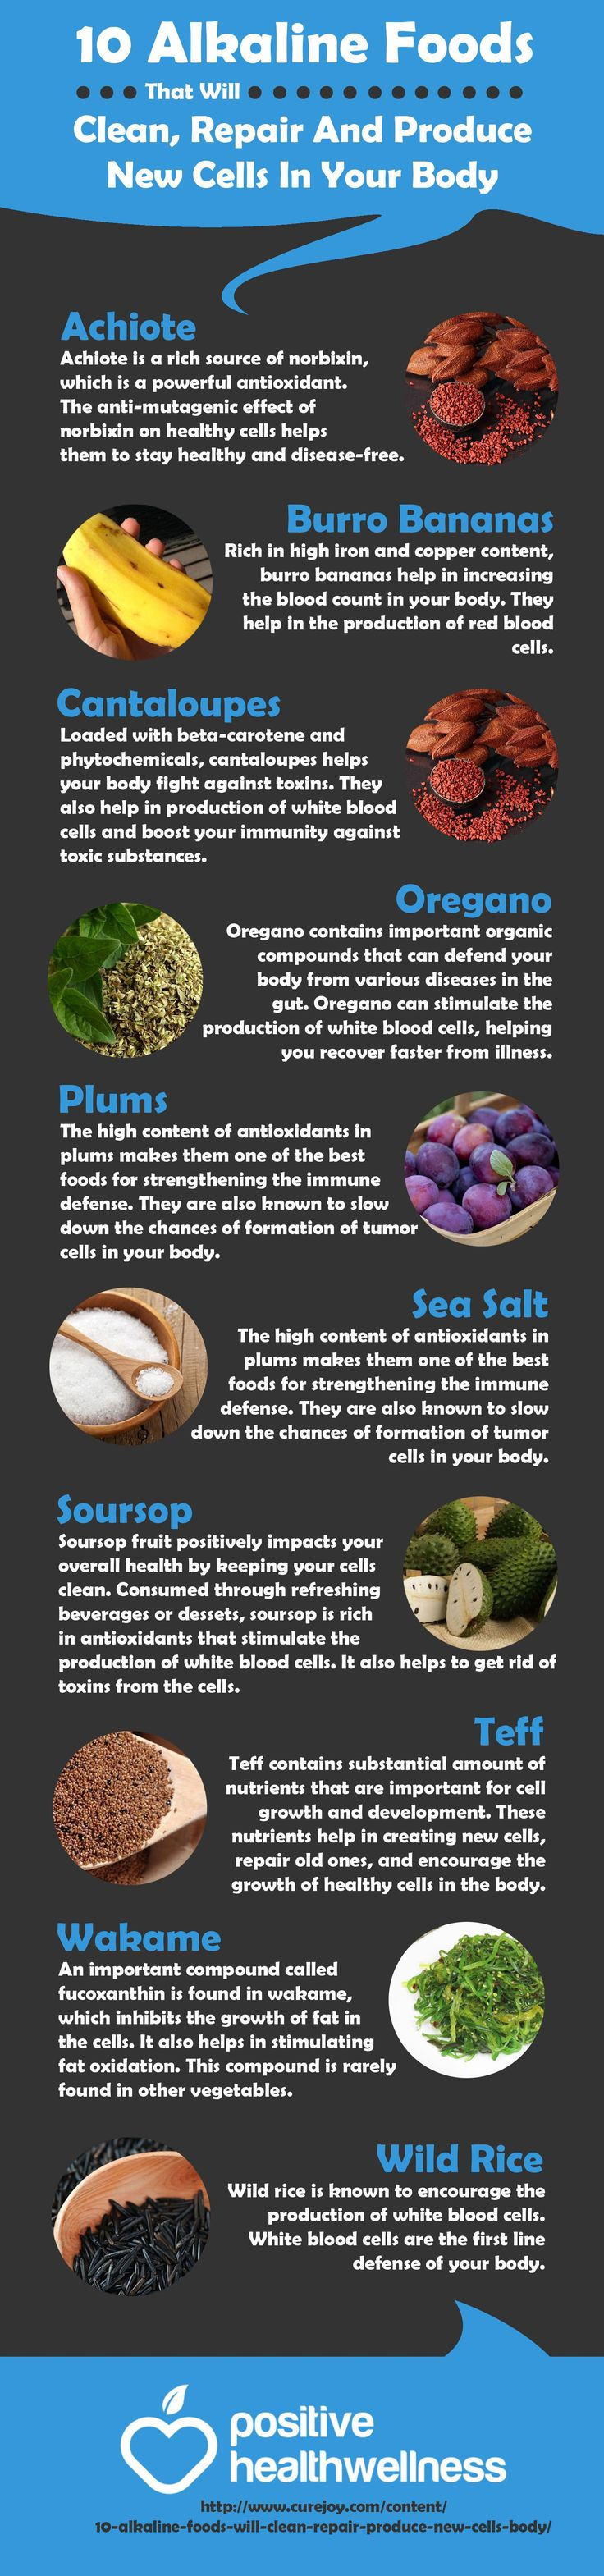 10 Alkaline Foods that Will Clean, Repair and Produce New Cells In Your Body – Positive Health Wellness Infographic